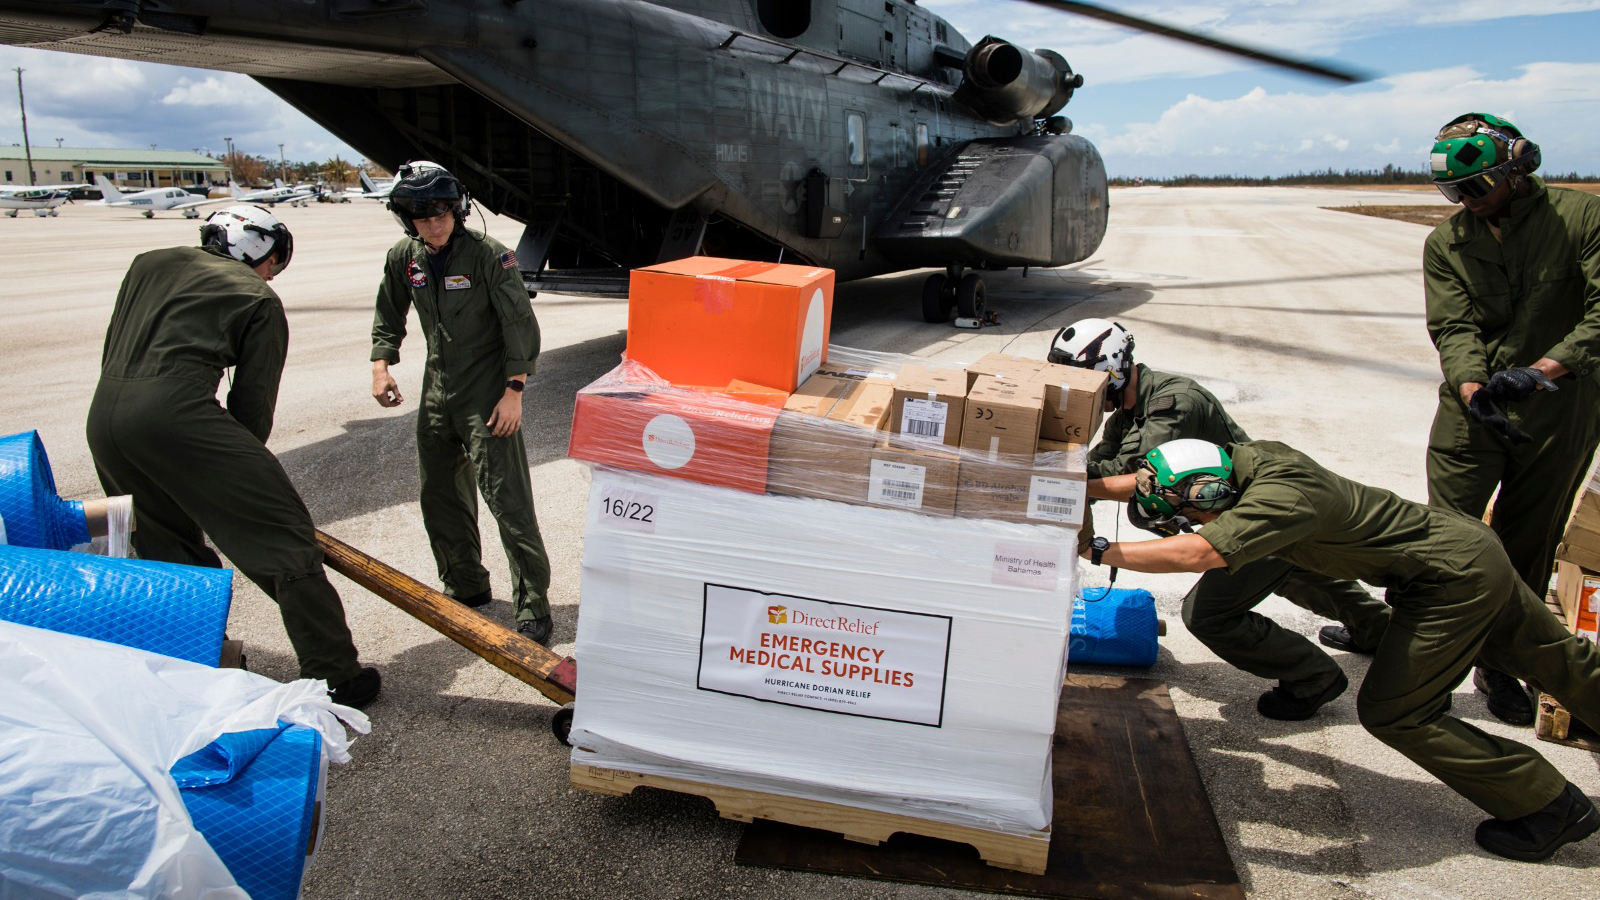 Medical aid arrives in the Bahamas after Hurricane Dorian. (Courtesy photo)